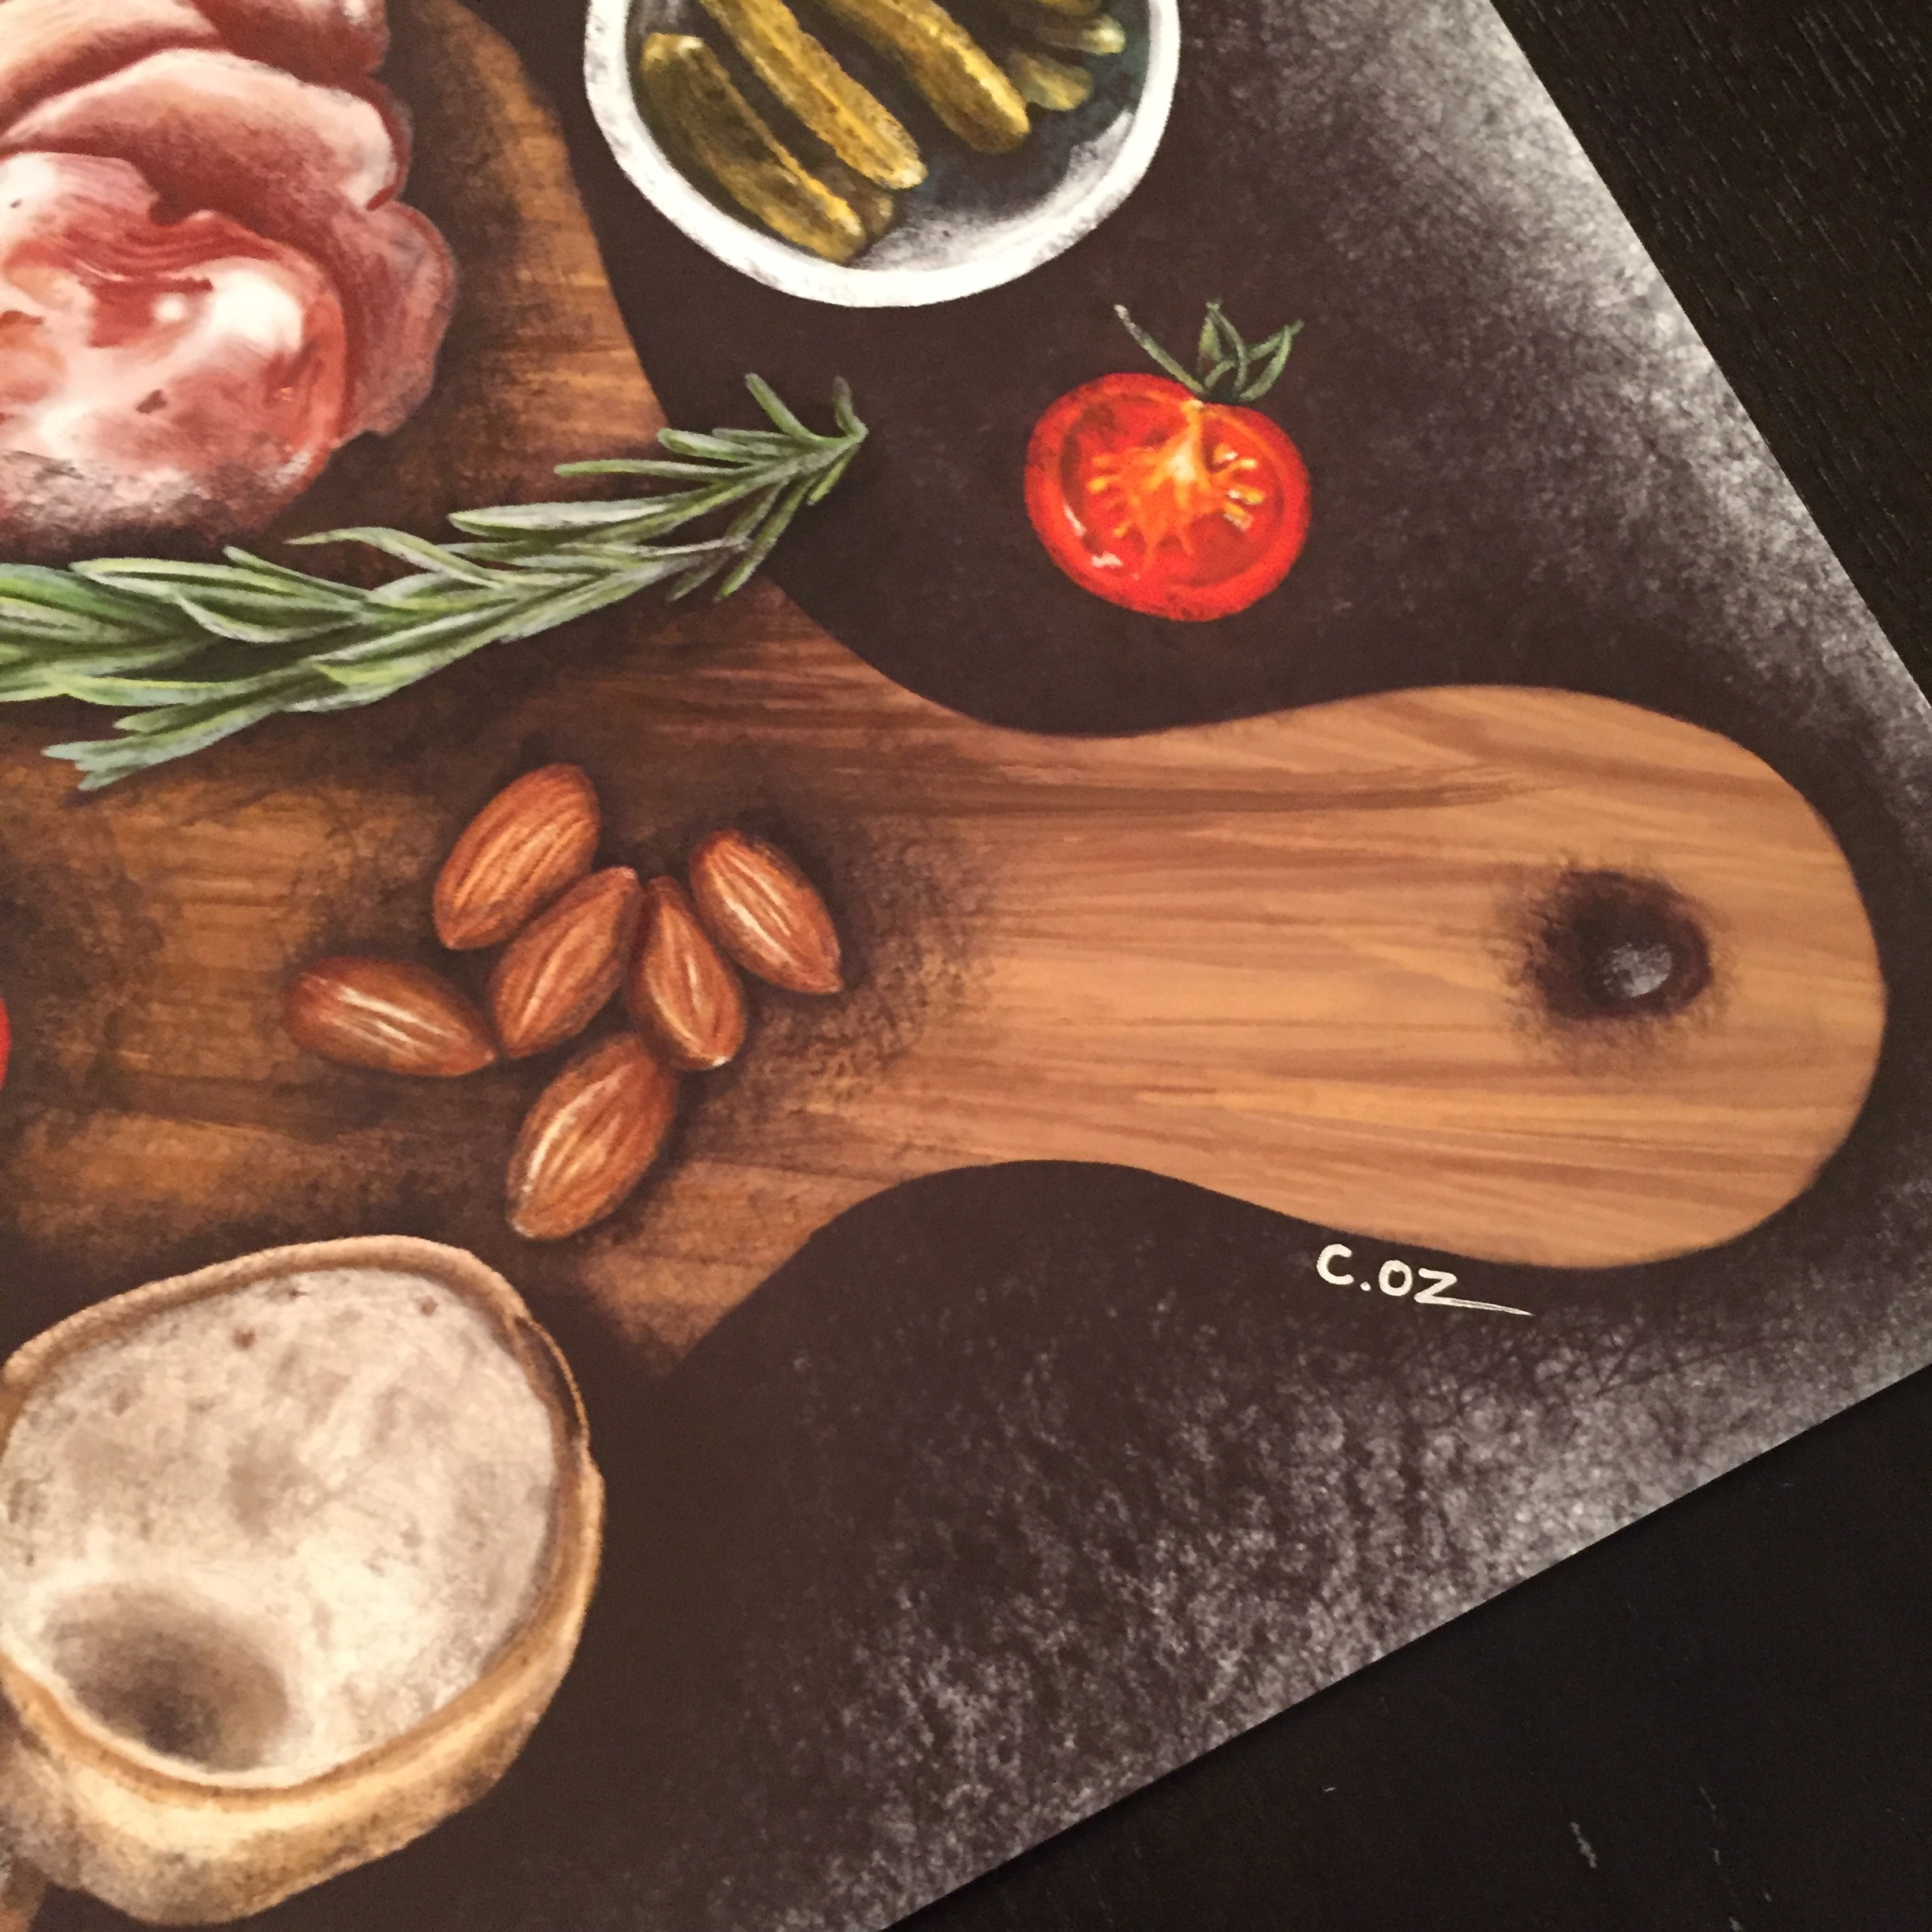 Charcuterie Board Digital Illustration by Michigan artist, Cheryl Oz